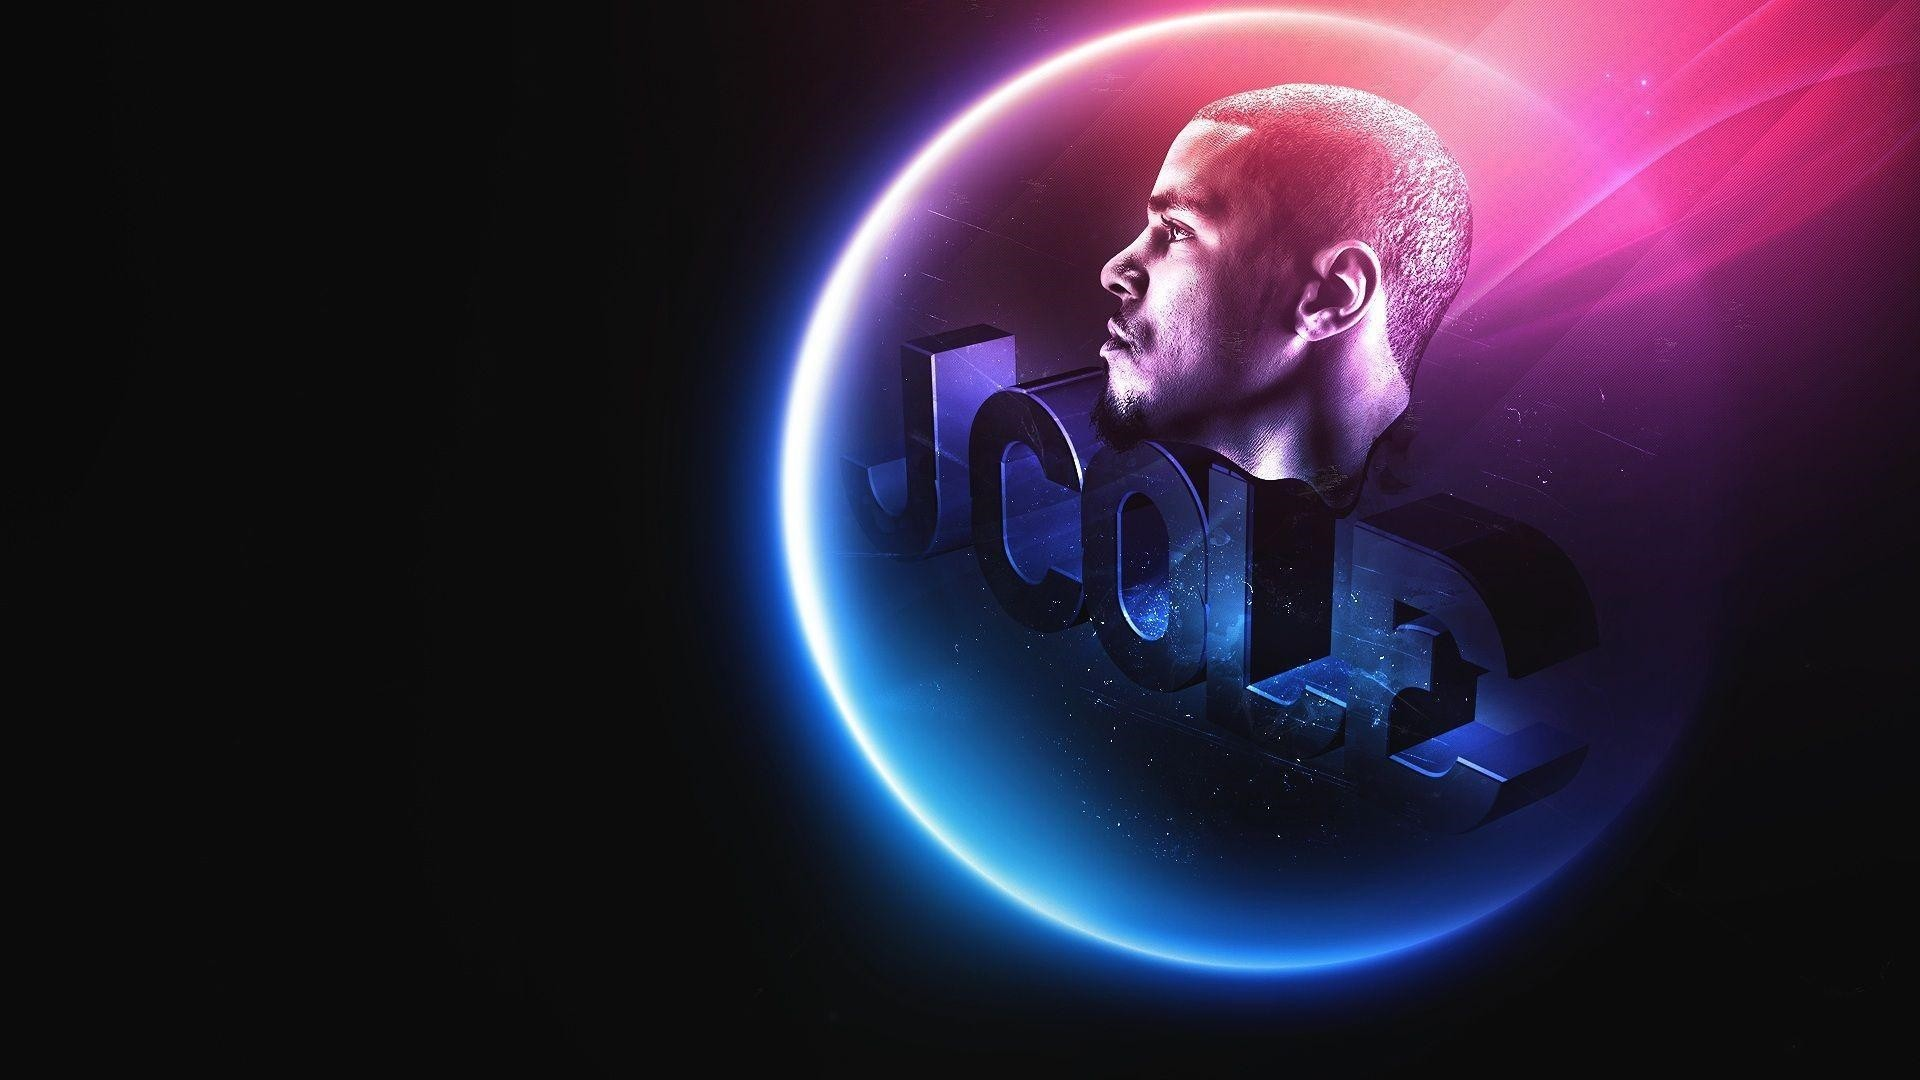 J Cole Free Wallpaper and Background